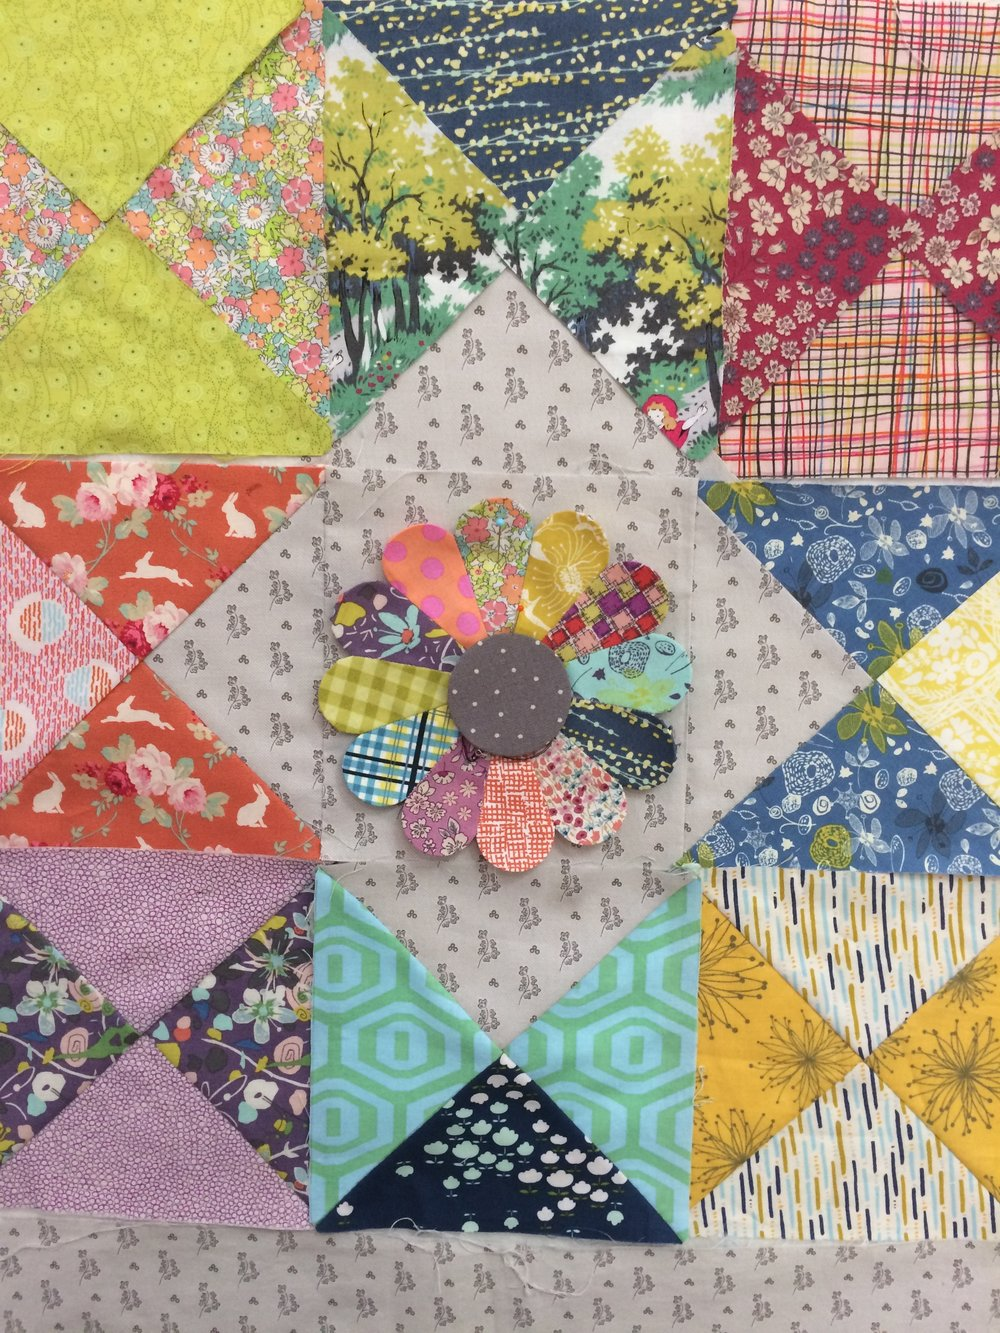 Ali has started her journey Into the Woods, and her fabrics are gorgeous!